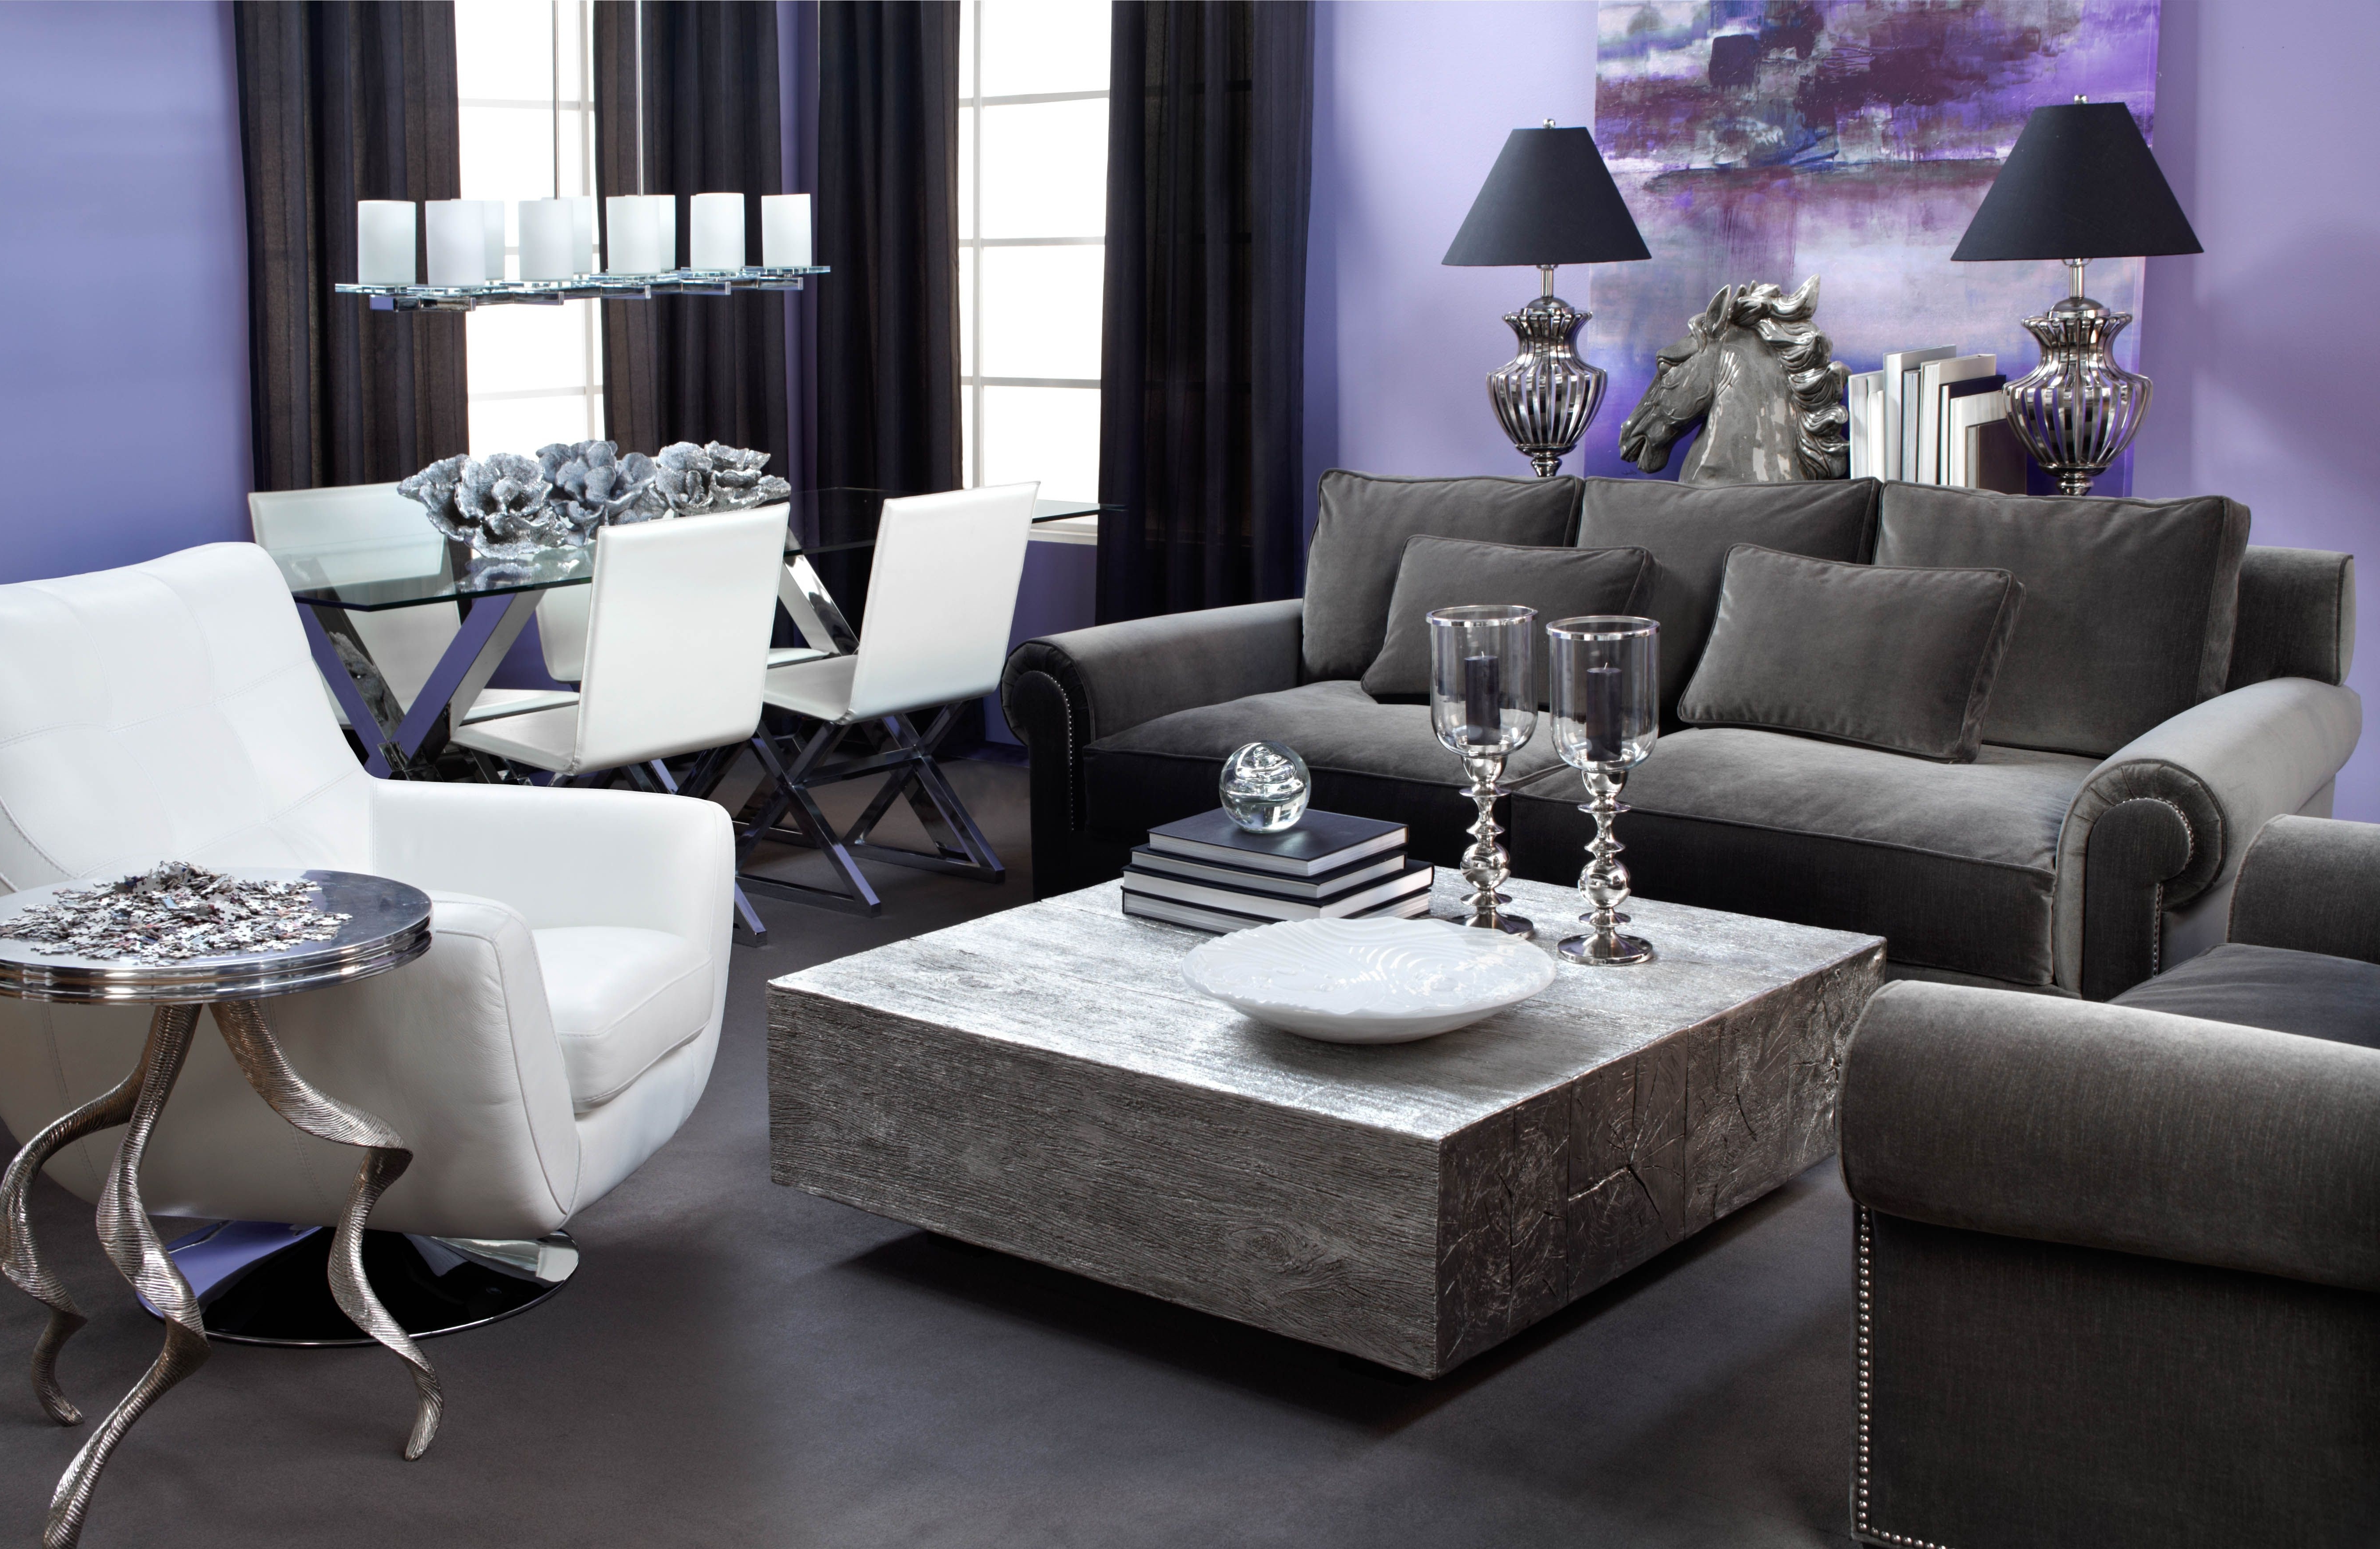 2019 Aubergine Pairs Well With Charcoal Grey Sofas, Silver Accents, And In Charcoal Grey Sofas (View 3 of 20)